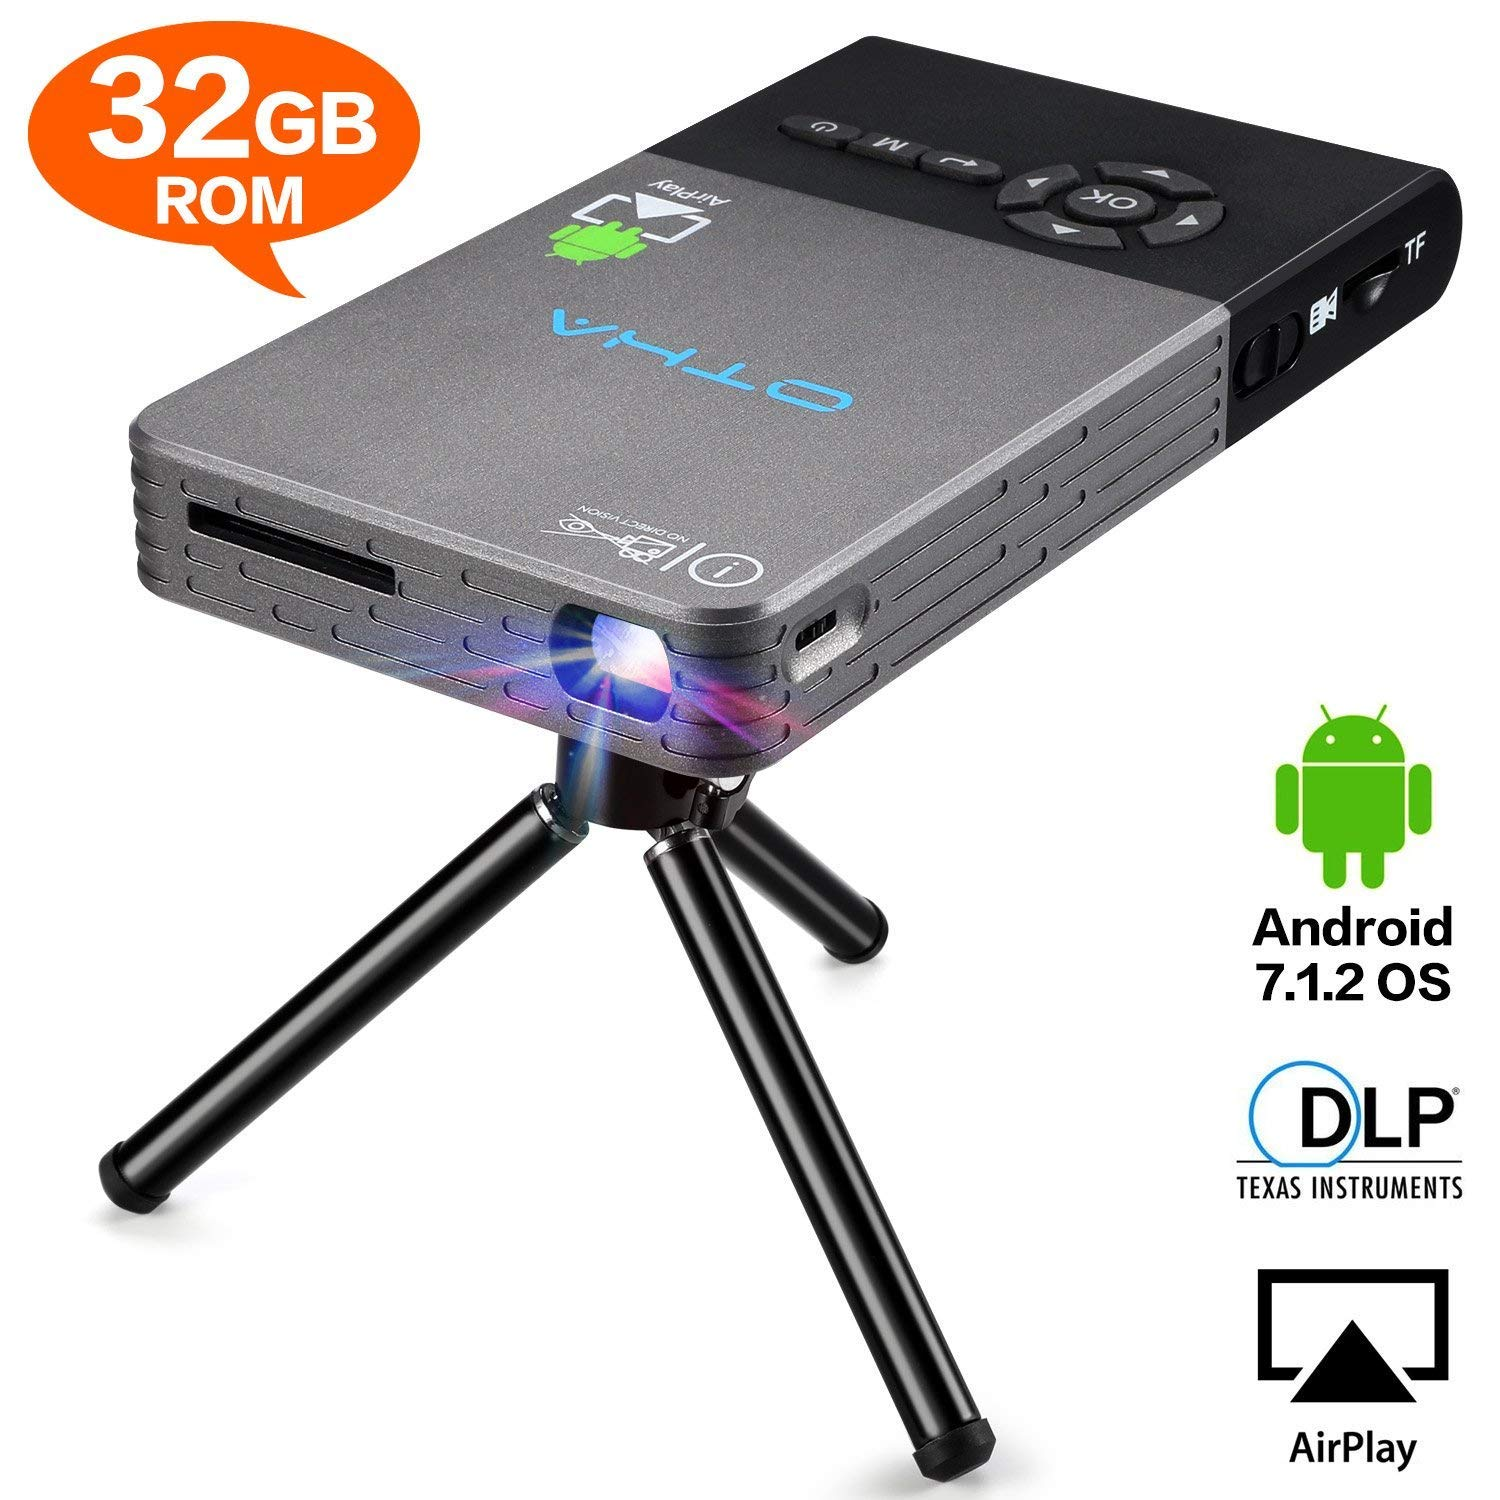 OTHA Mini Proyector, Portátil DLP LED Video Proyectors , 32GB Rom ...